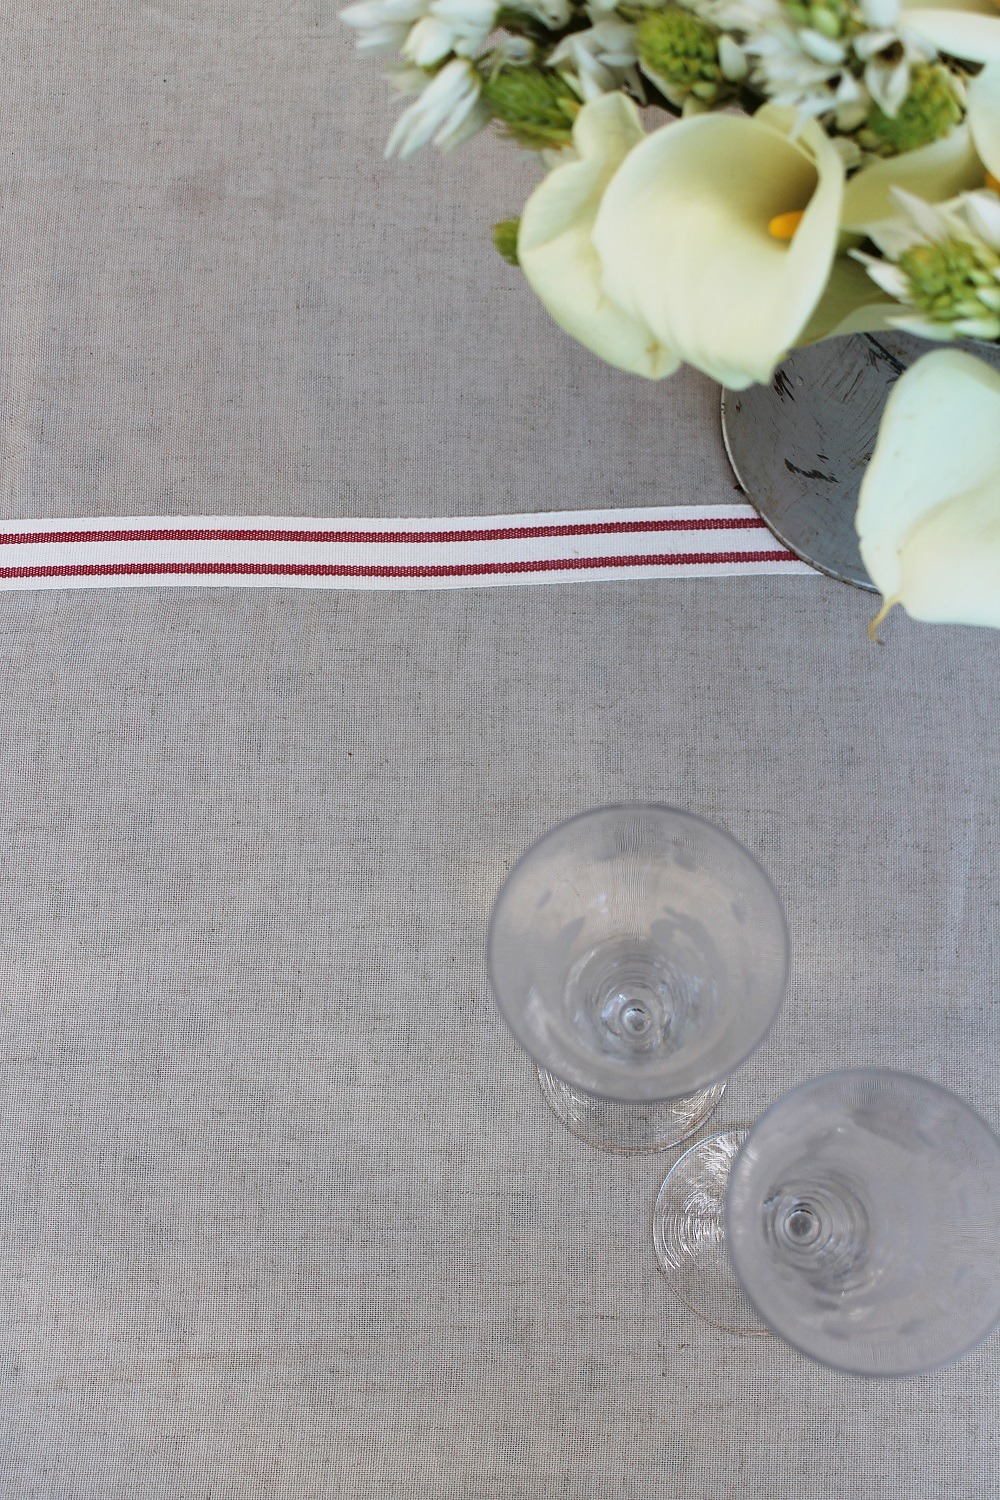 french tablecloth glass